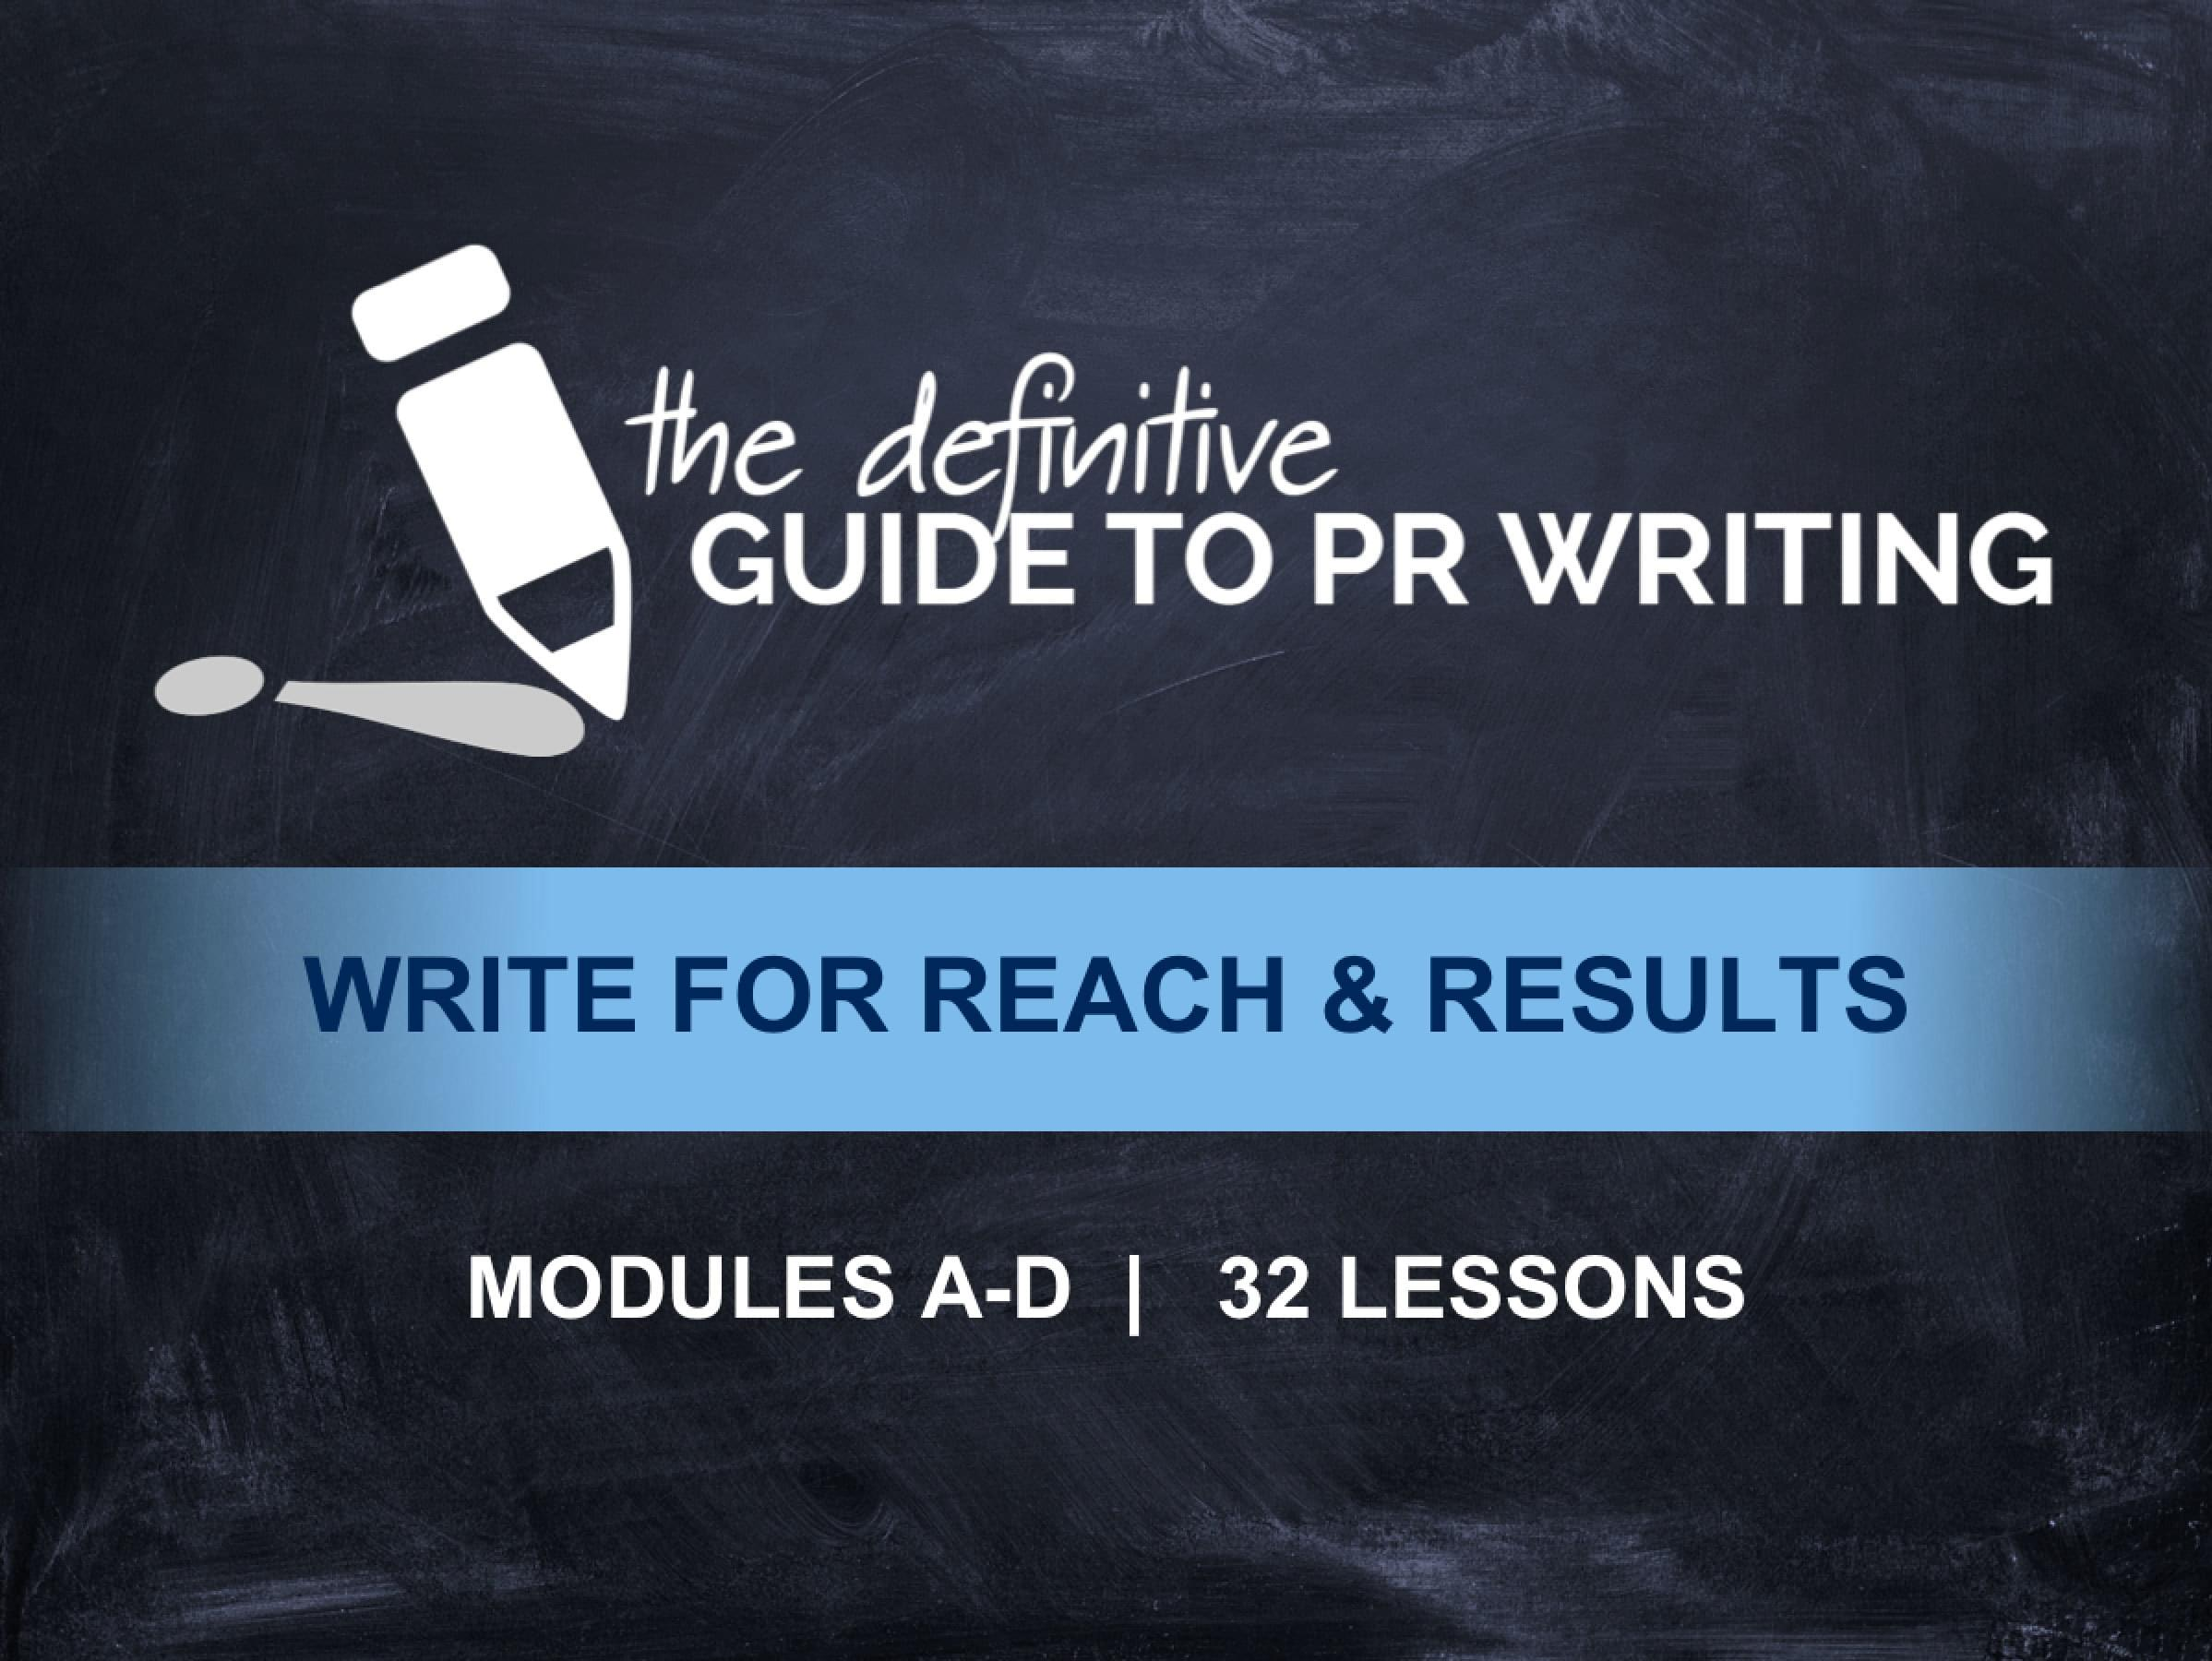 PR Writing Course: The Definitive Guide to PR Writing